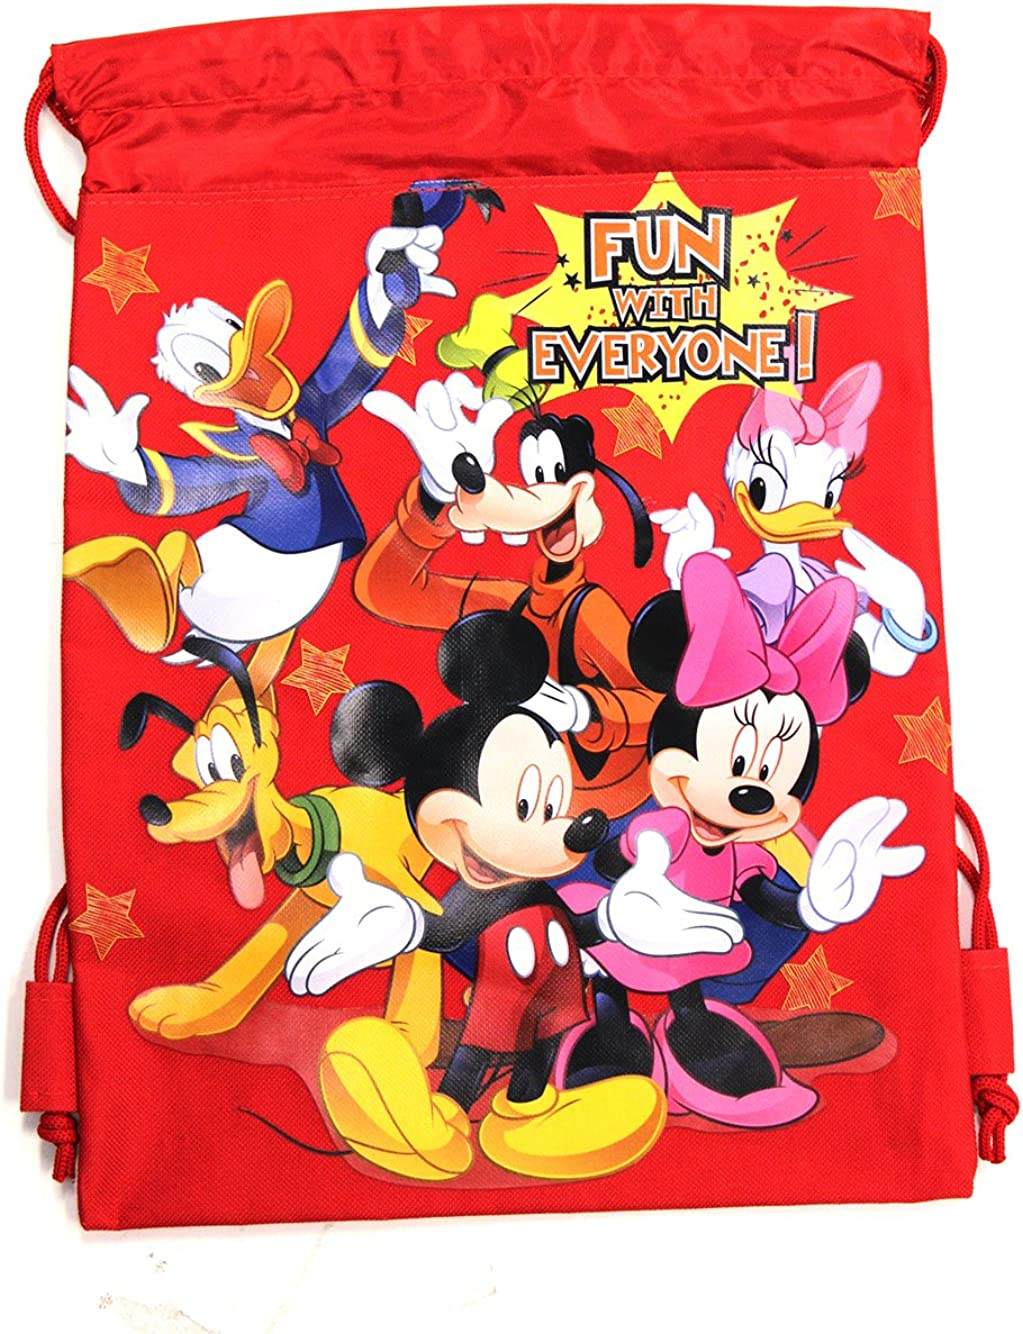 Red Mickey Mouse Drawstring Backpack - Mickey Mouse Drawstring Bag